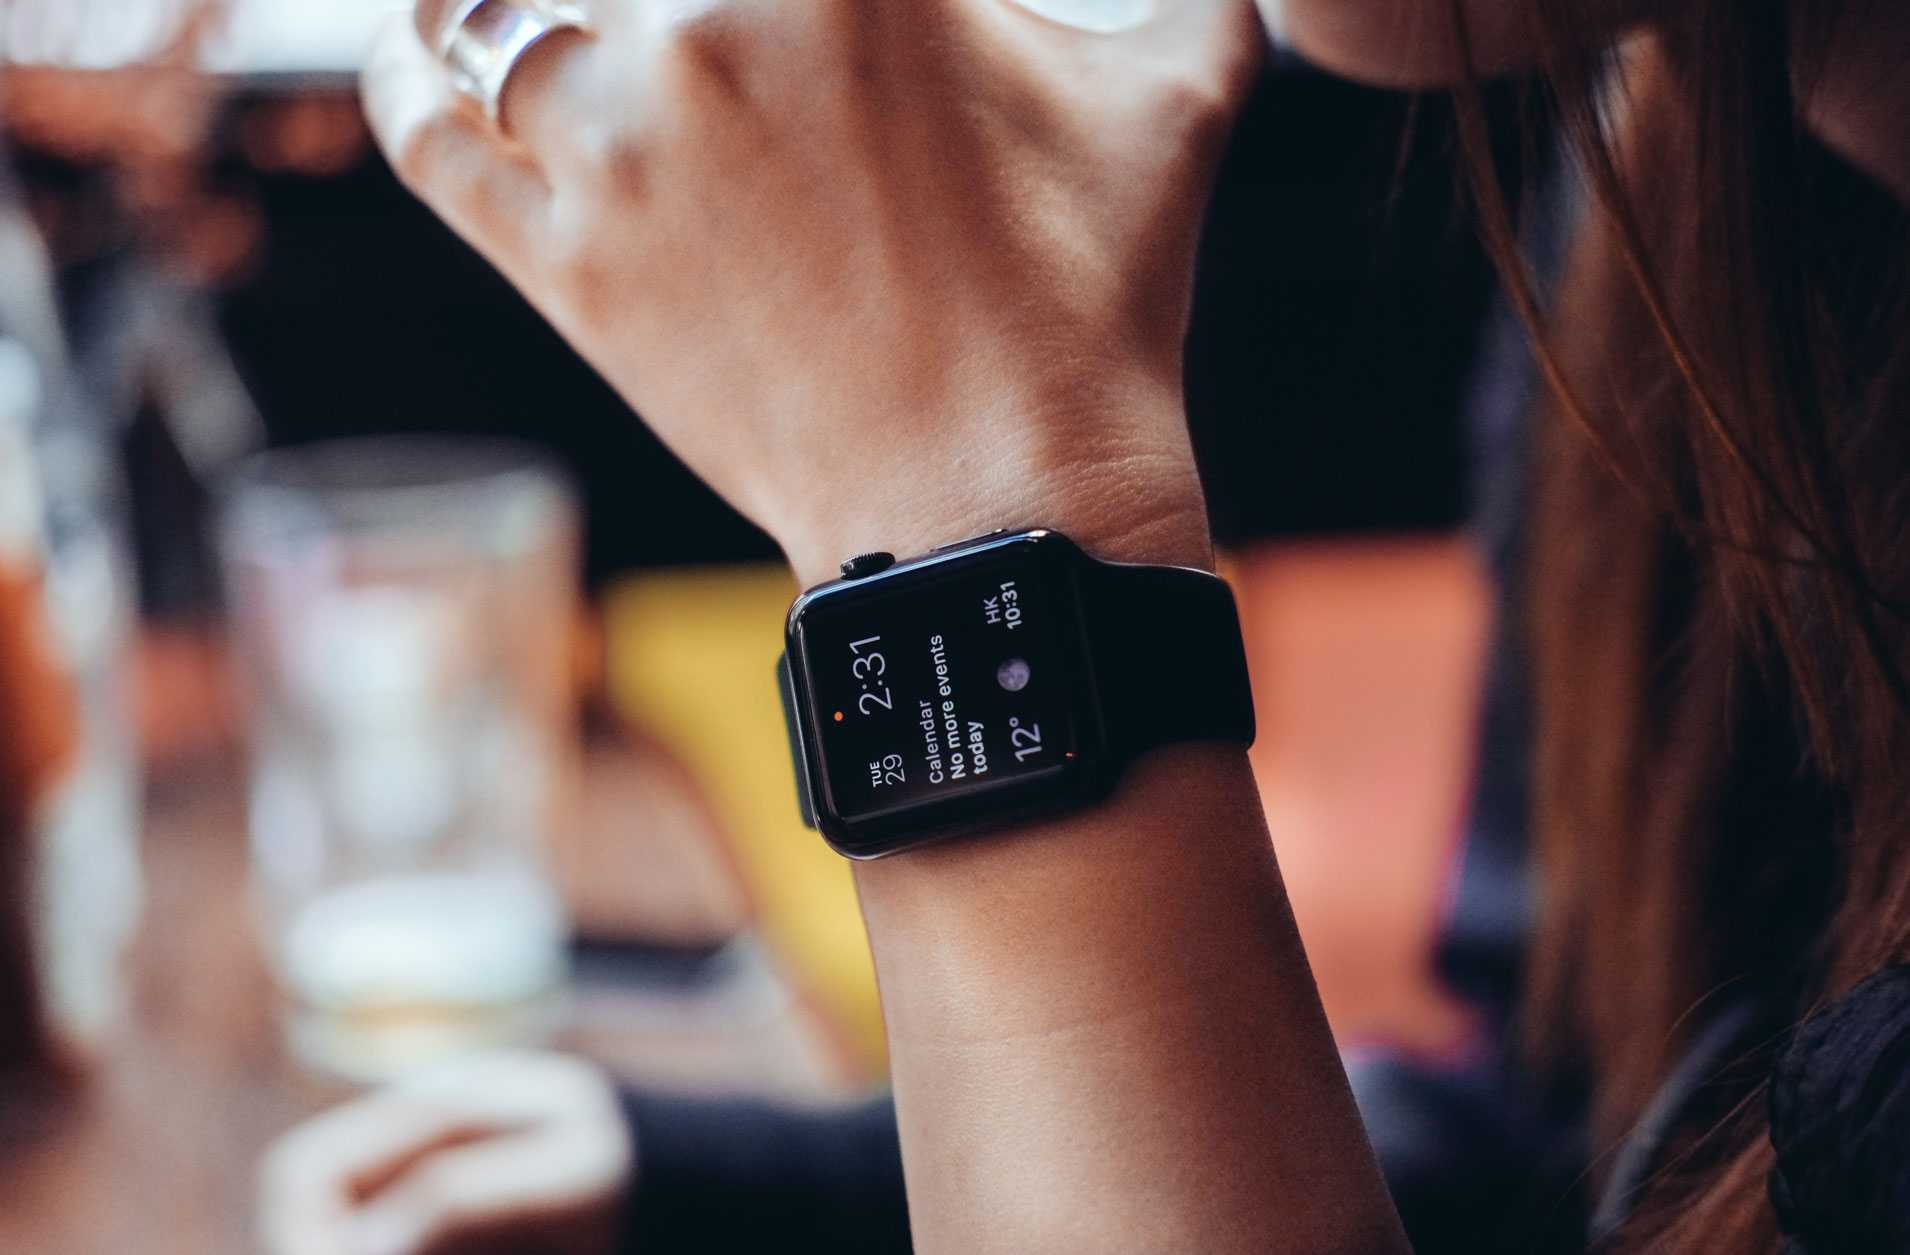 Wearables shipments pass 100 million for first time